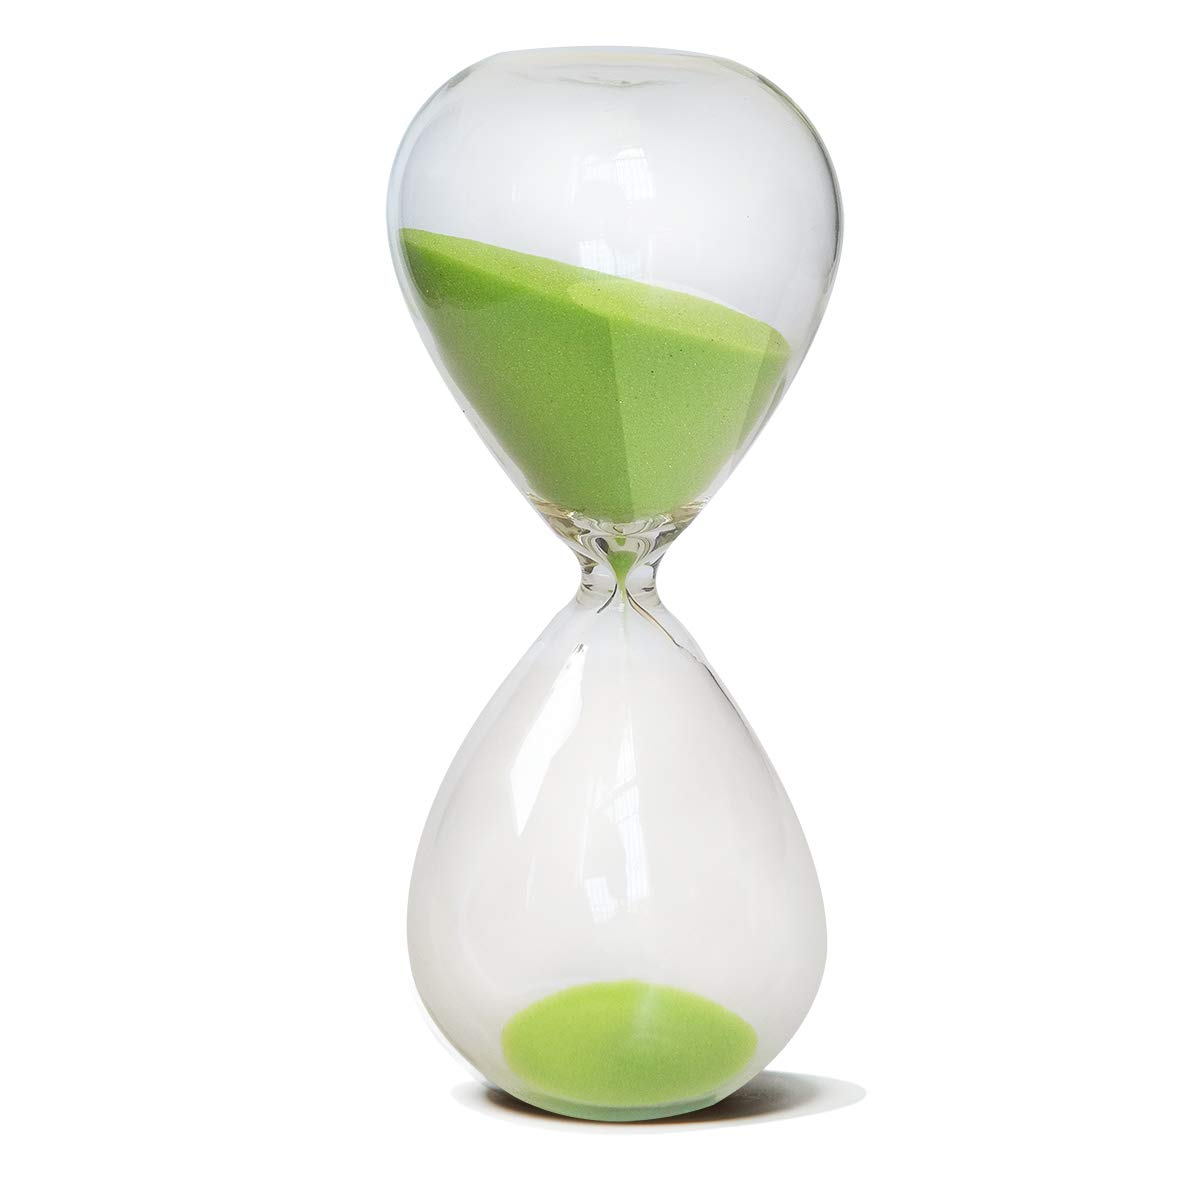 HoveBeaty Hourglass, Hand-Blown Sand Timer Set for Time Management 15 Minutes Durable Glass Construction (15 min, Black) COMINHKPR123989